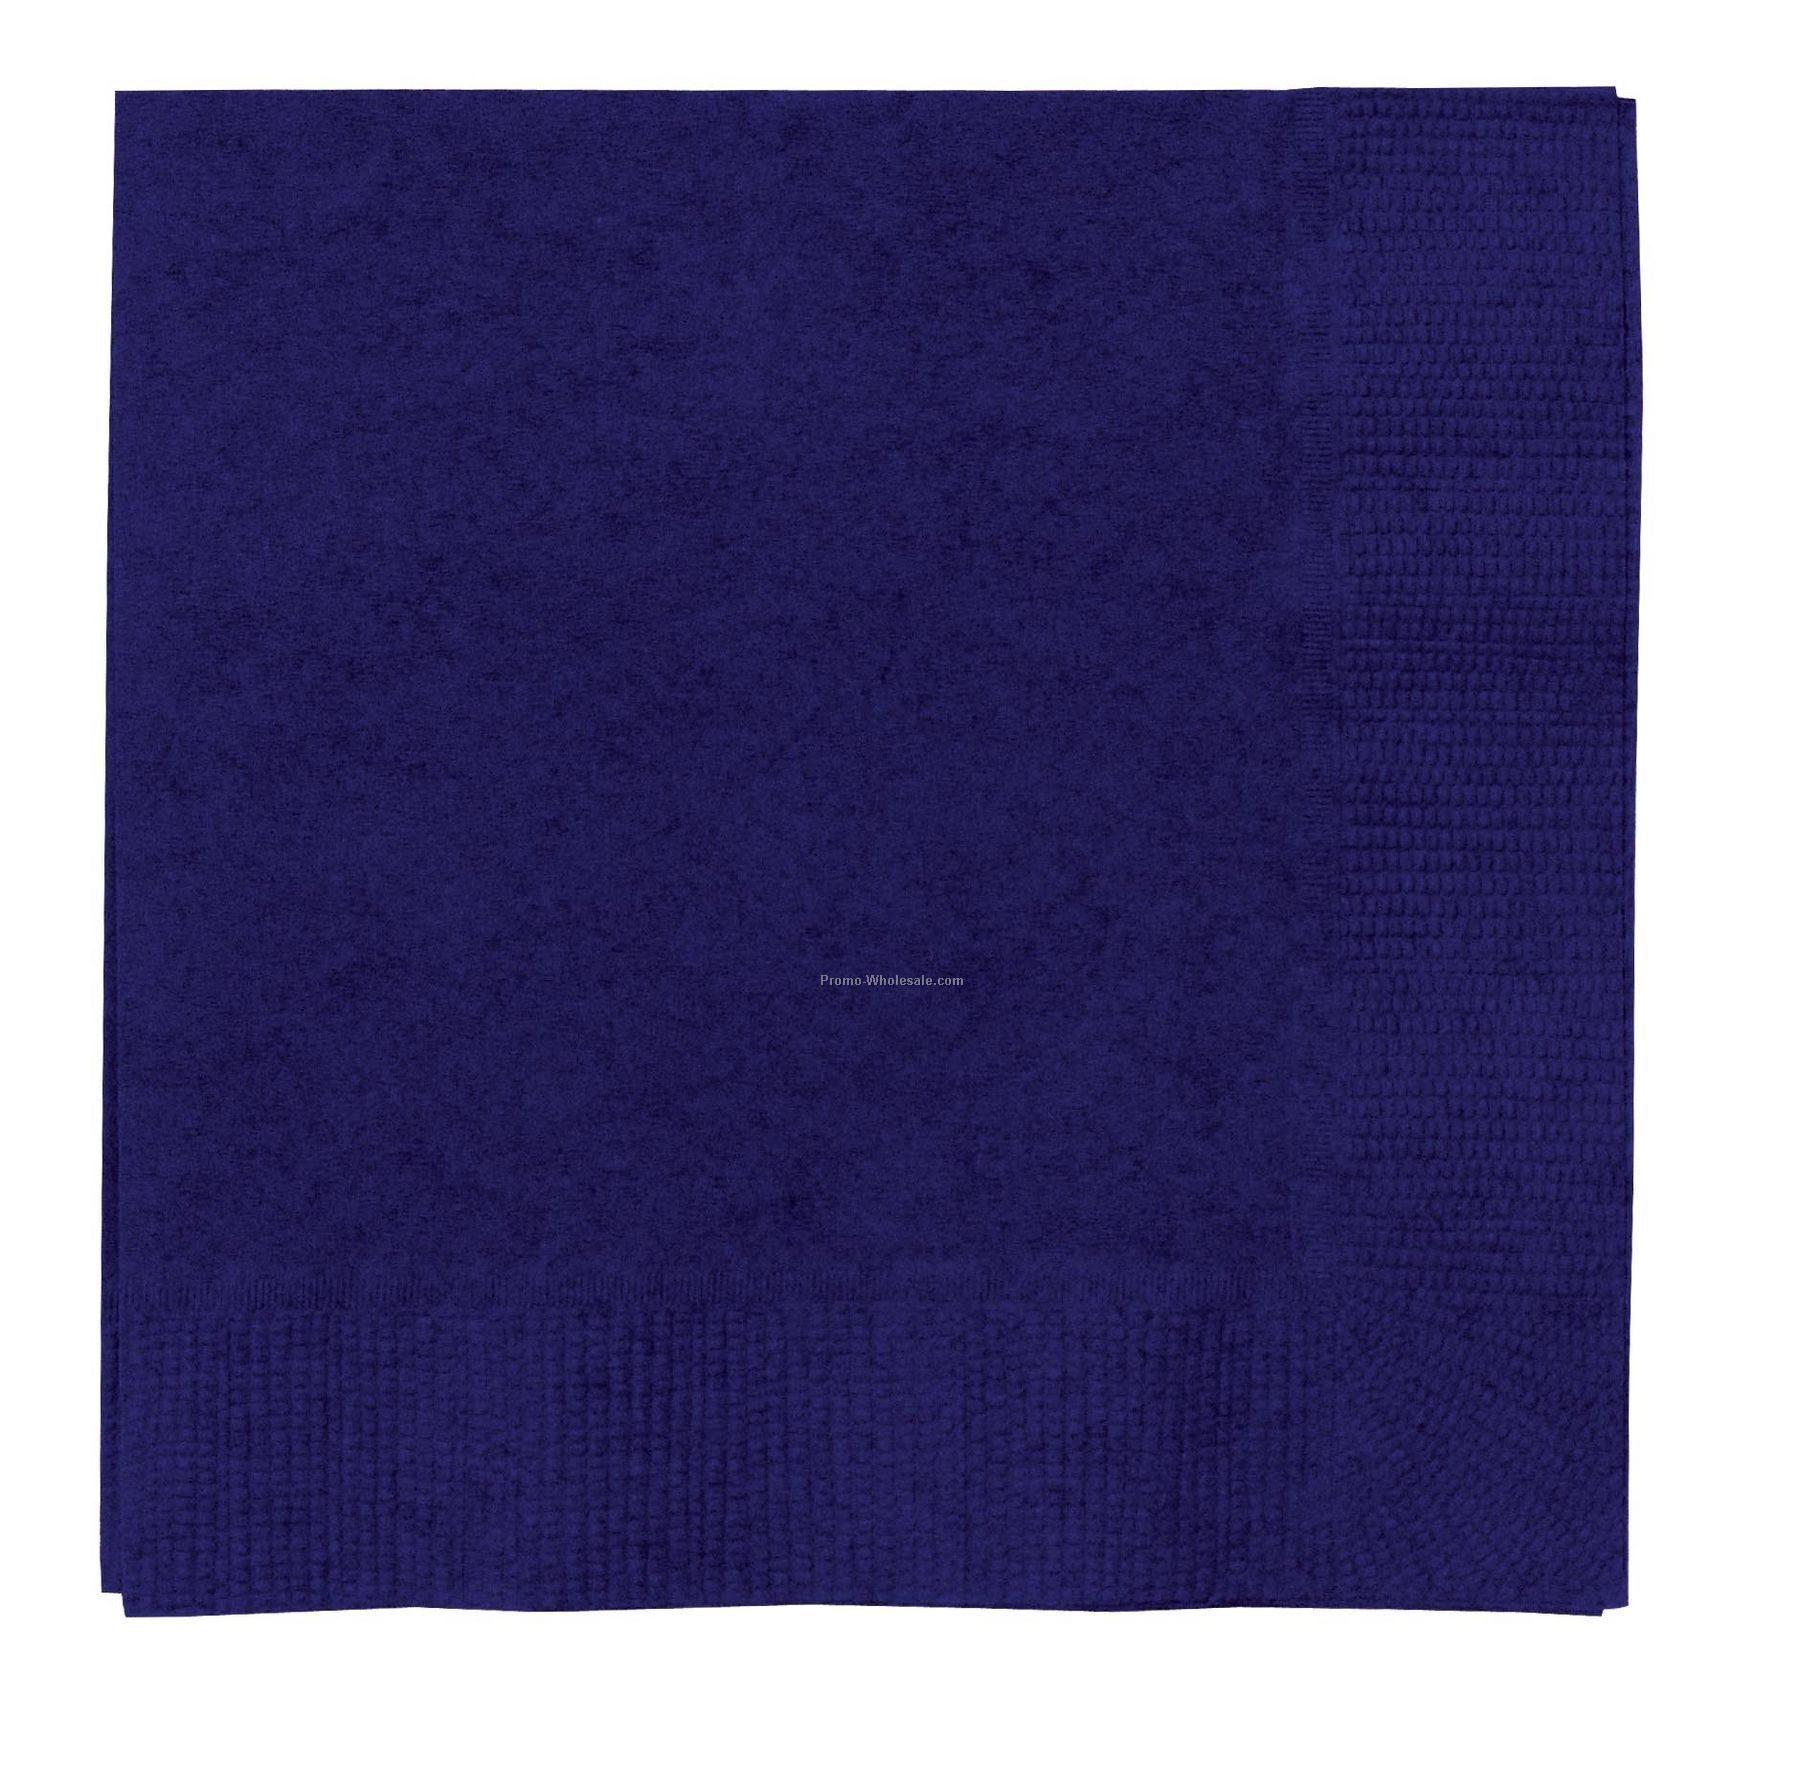 The 500 Line Colorware Navy Blue Luncheon Napkins